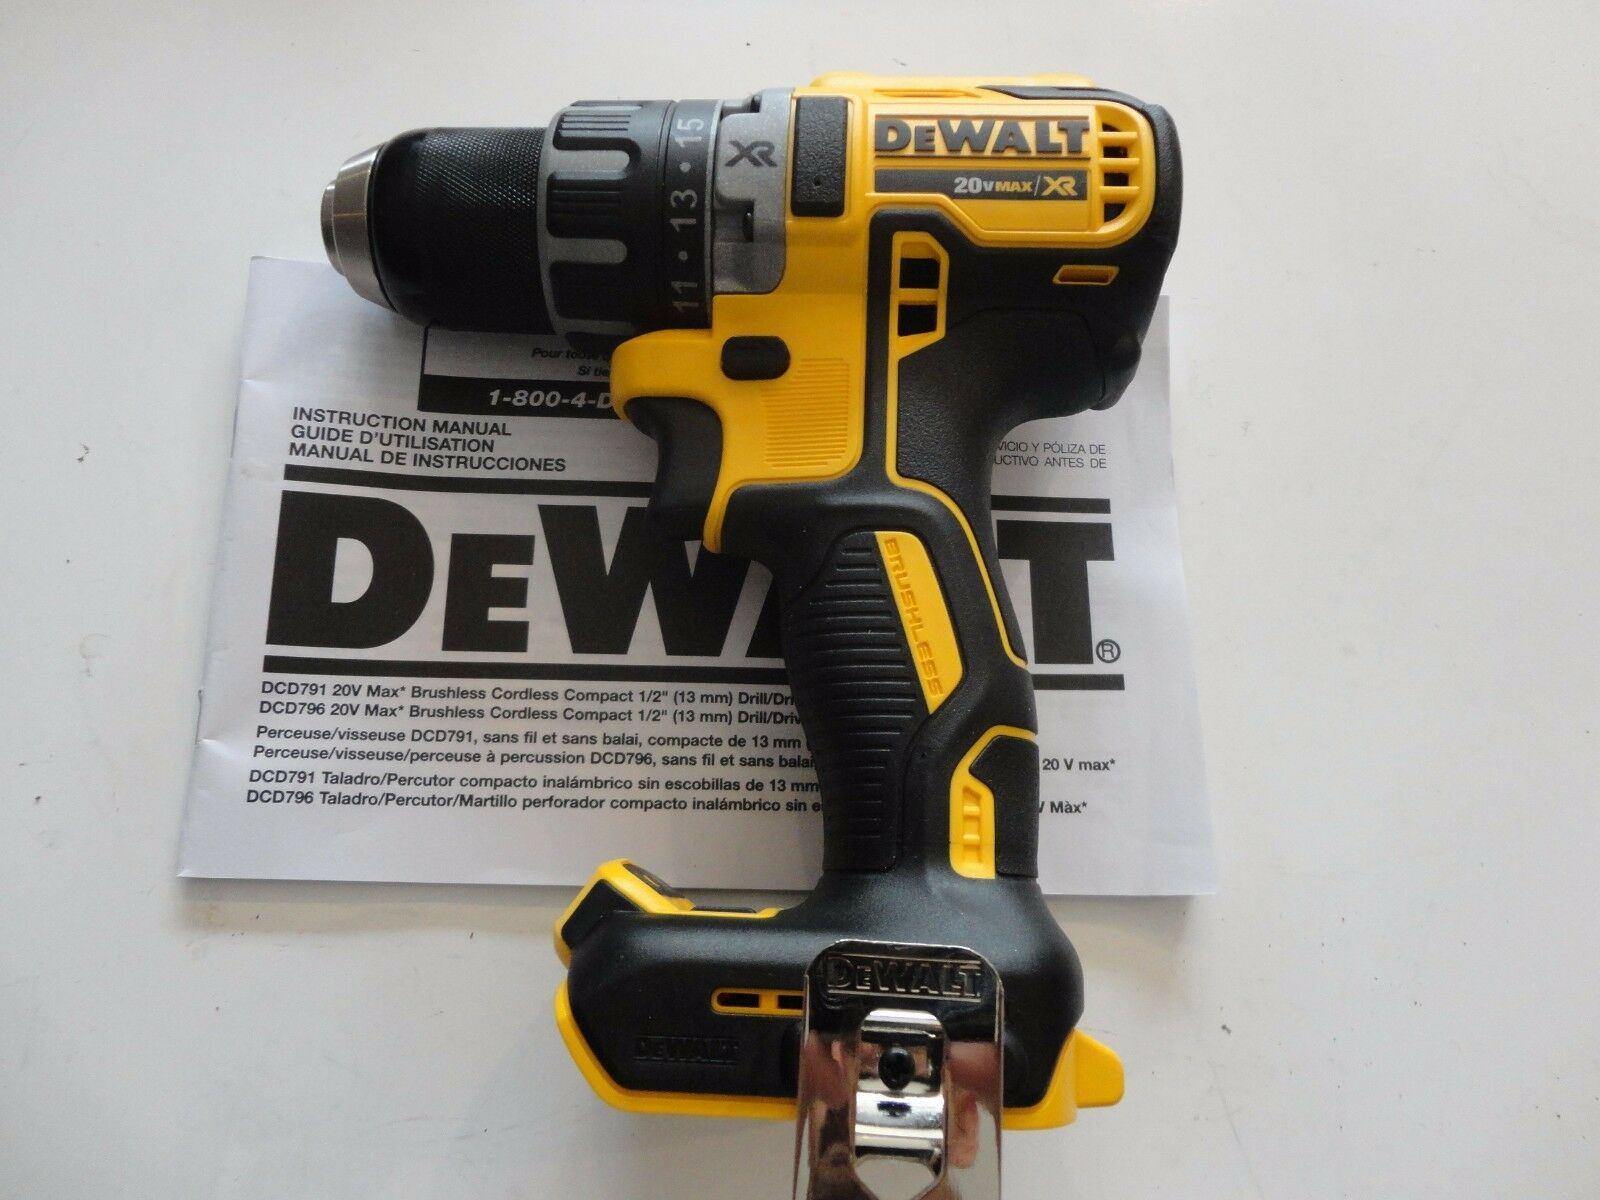 DEWALT DCD791B 20V 20 Volt 2 Speed Brushless 1/2″ Lithium Ion Max Drill Driver